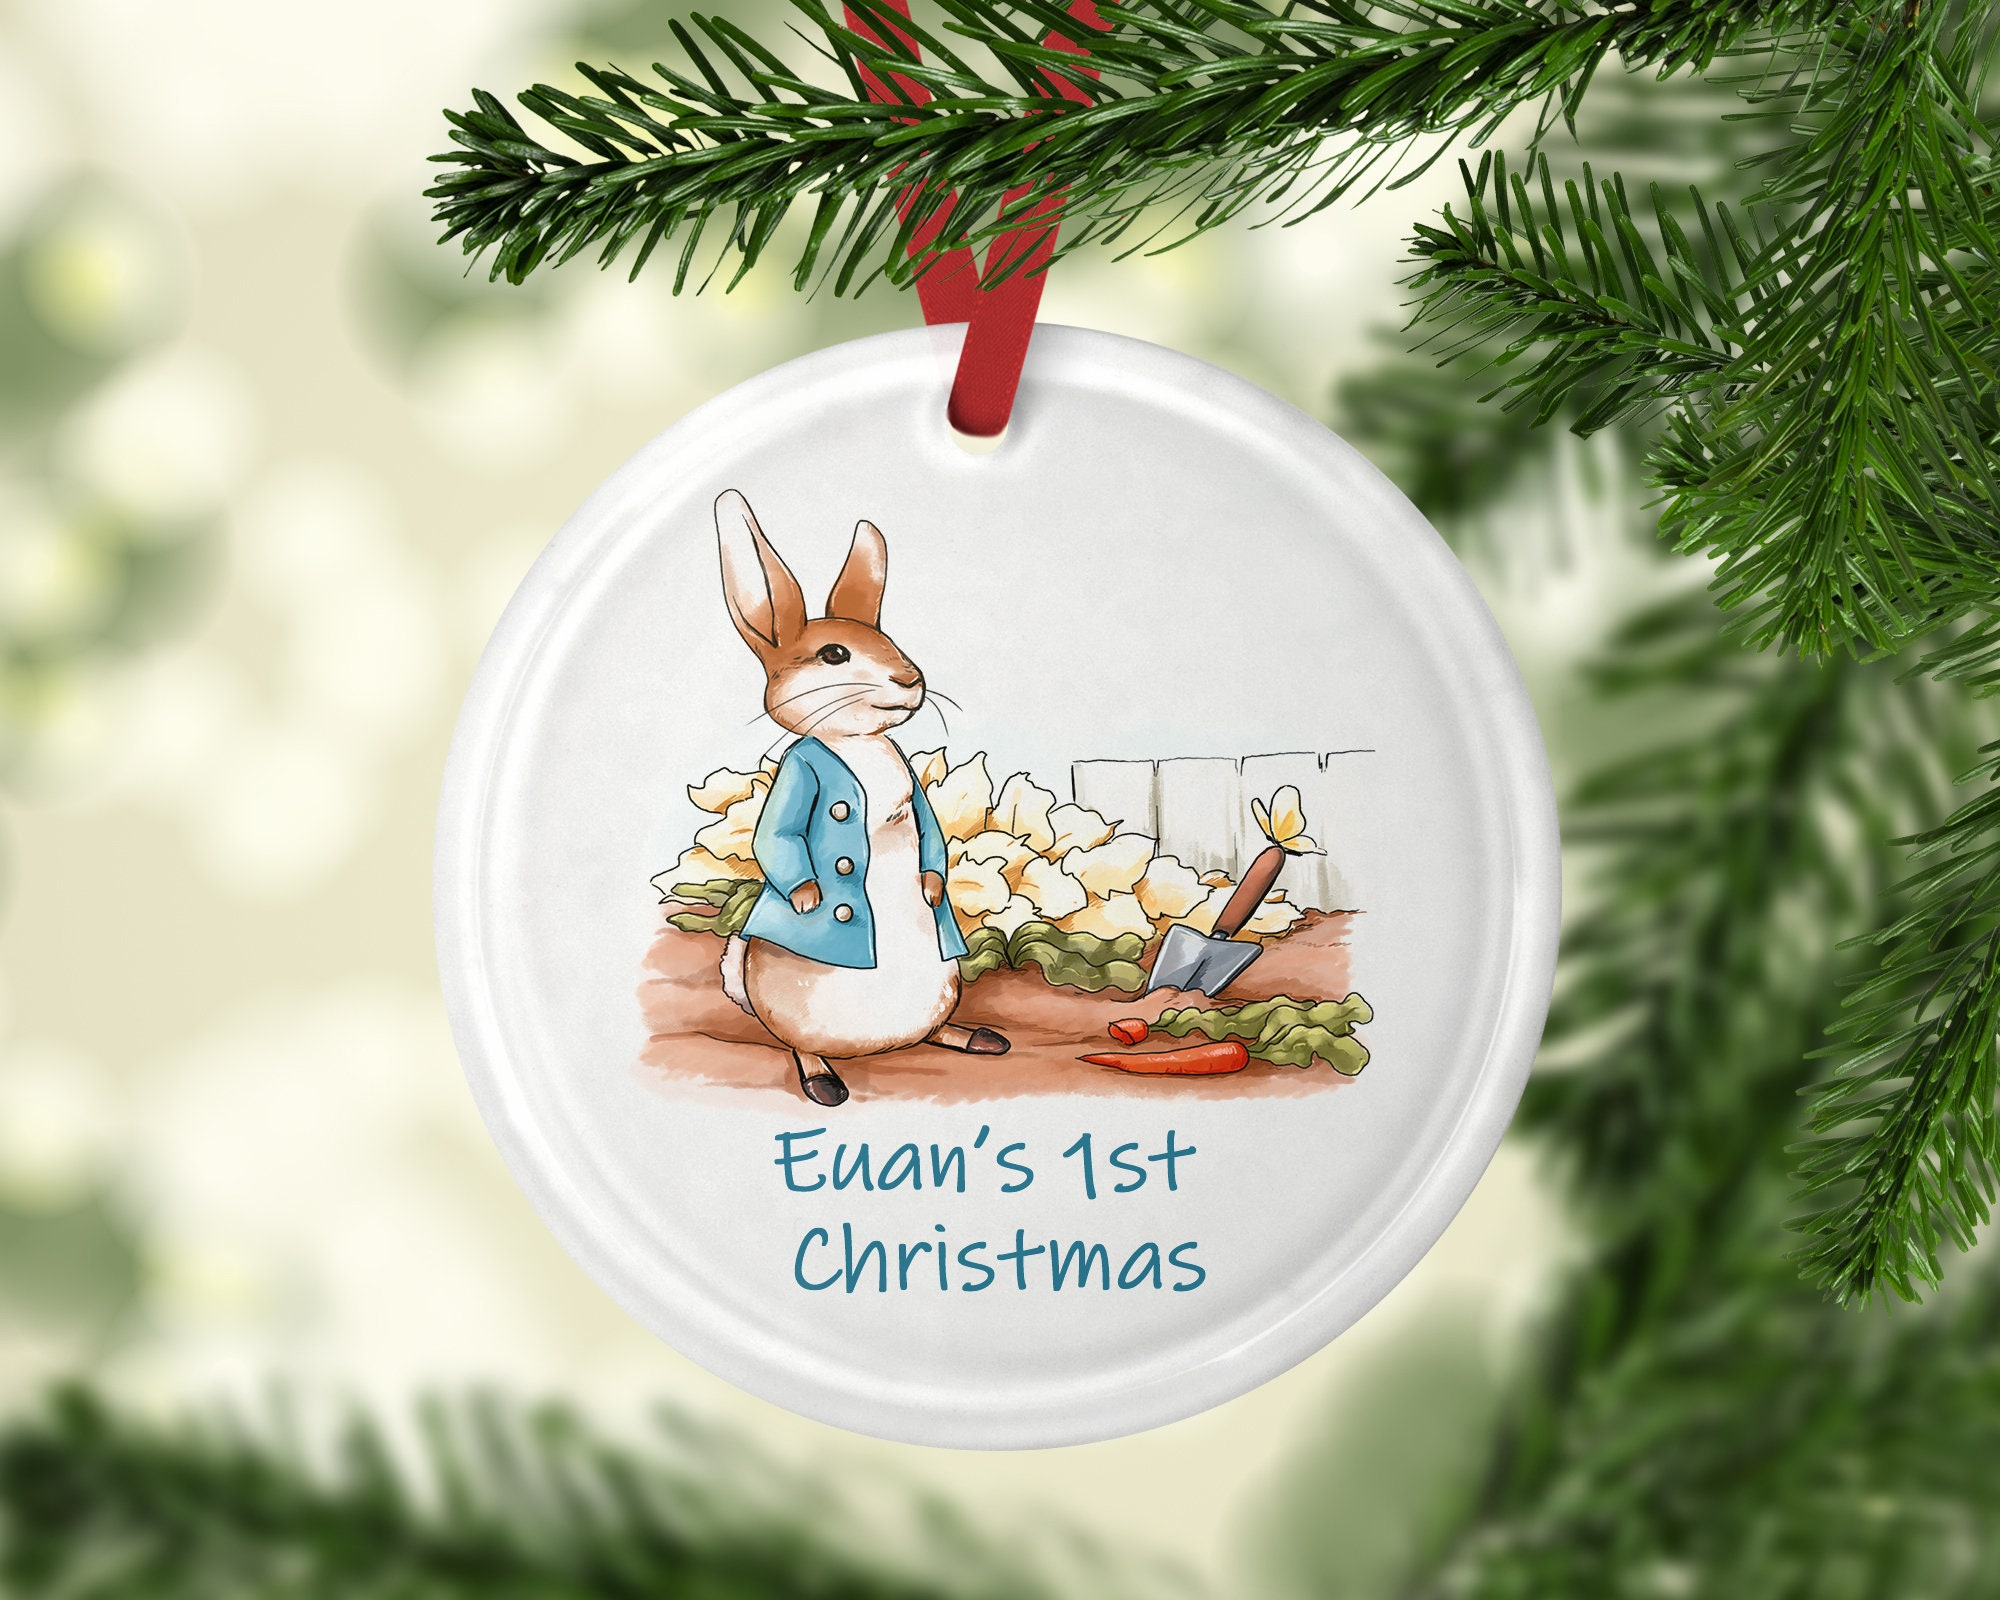 Babys 1st Christmas bauble Peter rabbit gift personalized | Etsy